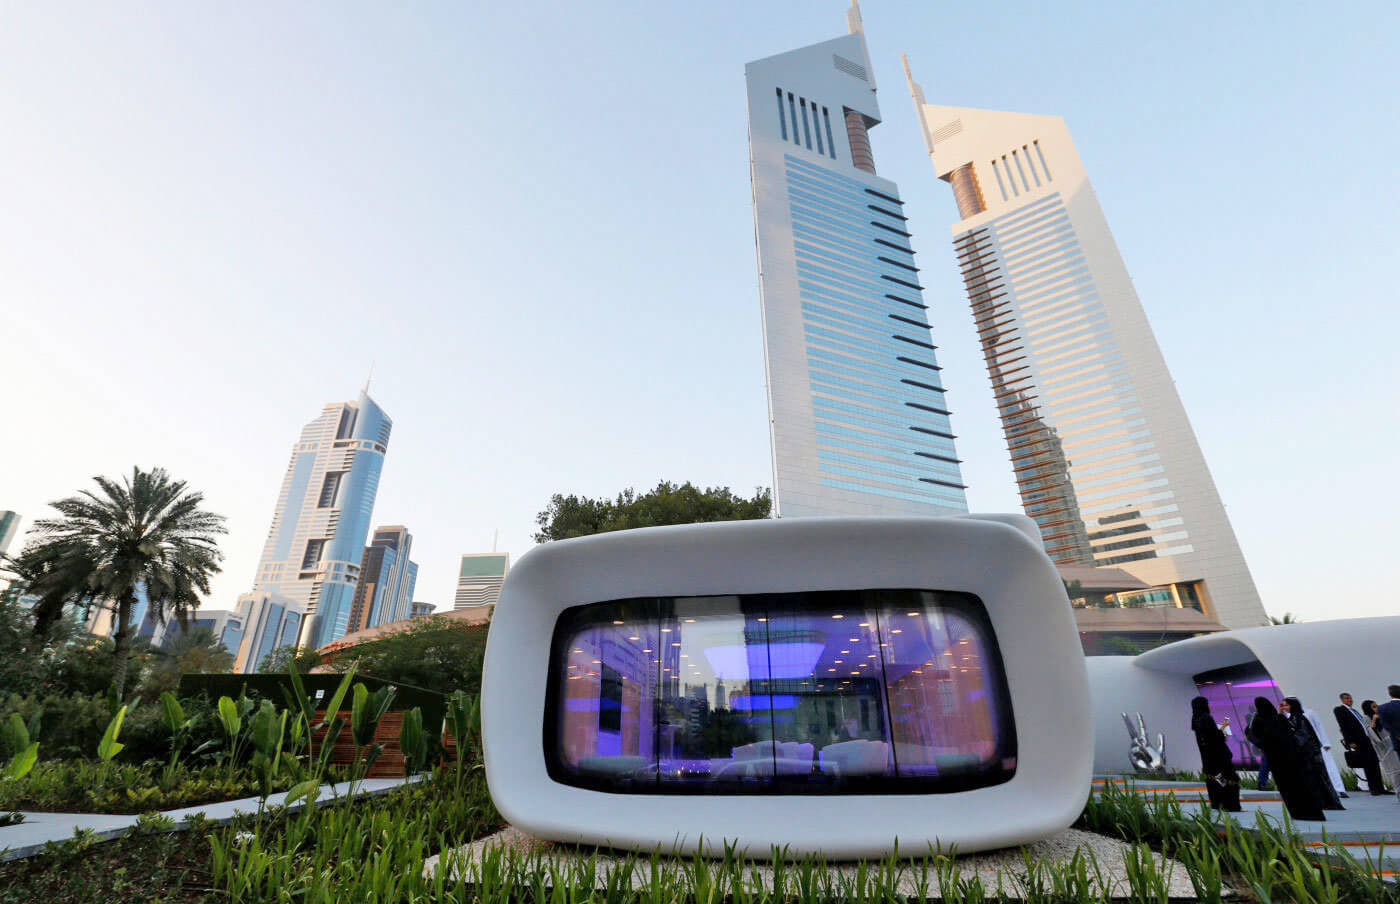 Dubai's Latest Sustainability Move: Have 25% Of All New Buildings Be 3D Printed By 2025